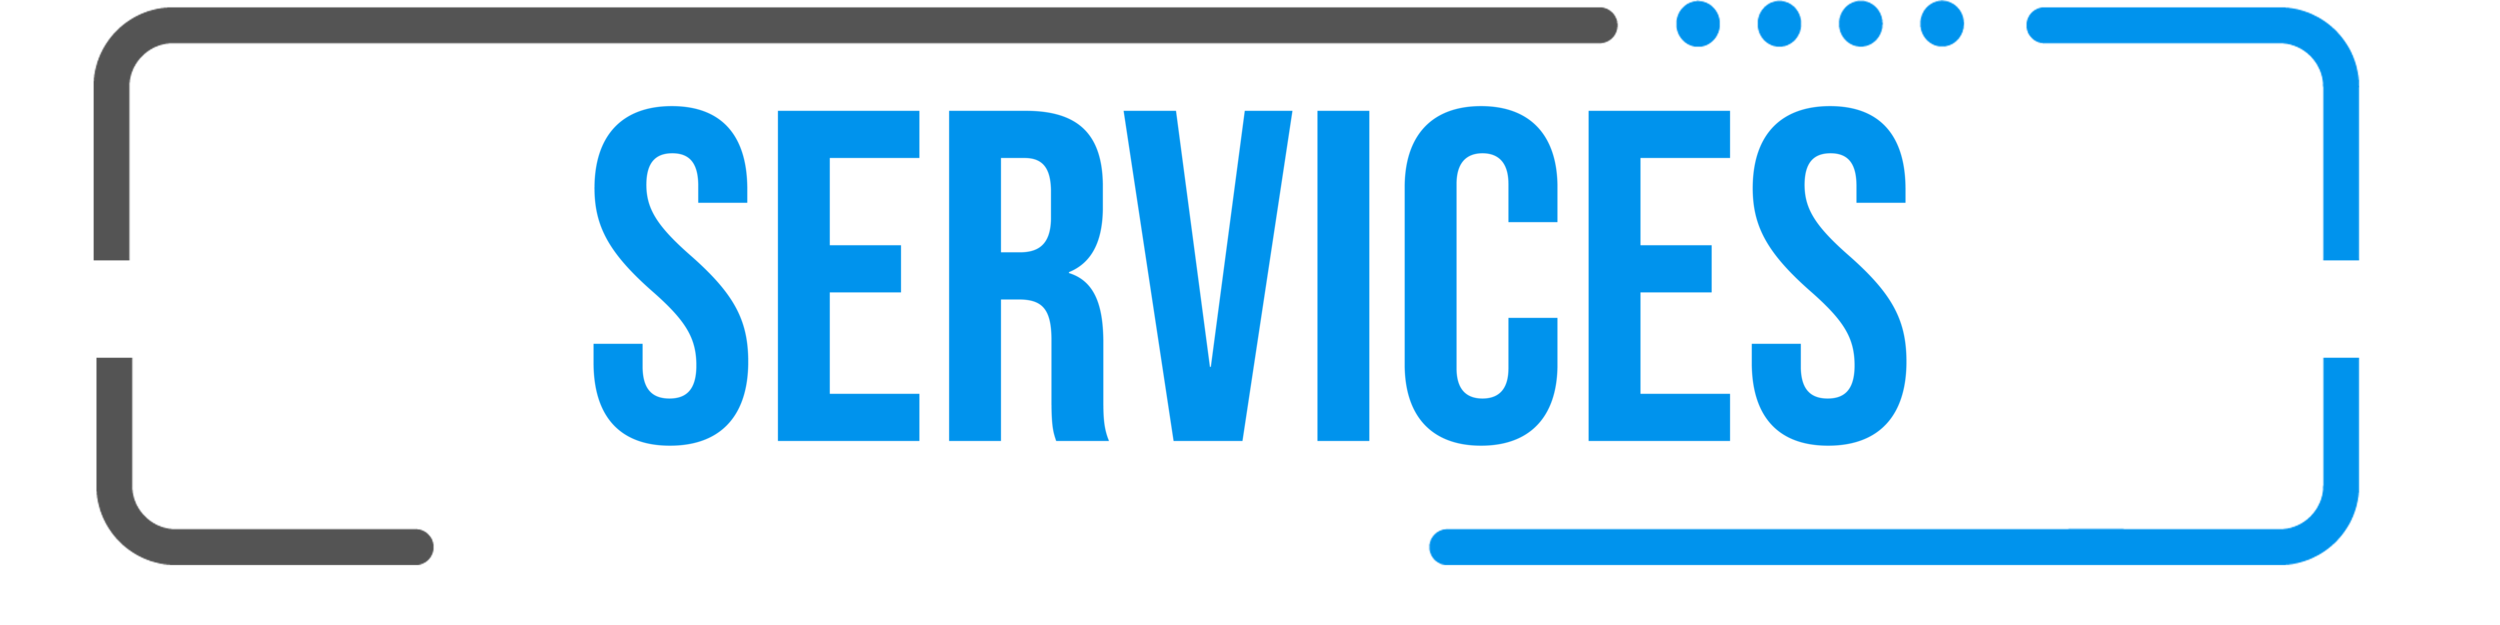 ServicesGraphic.png